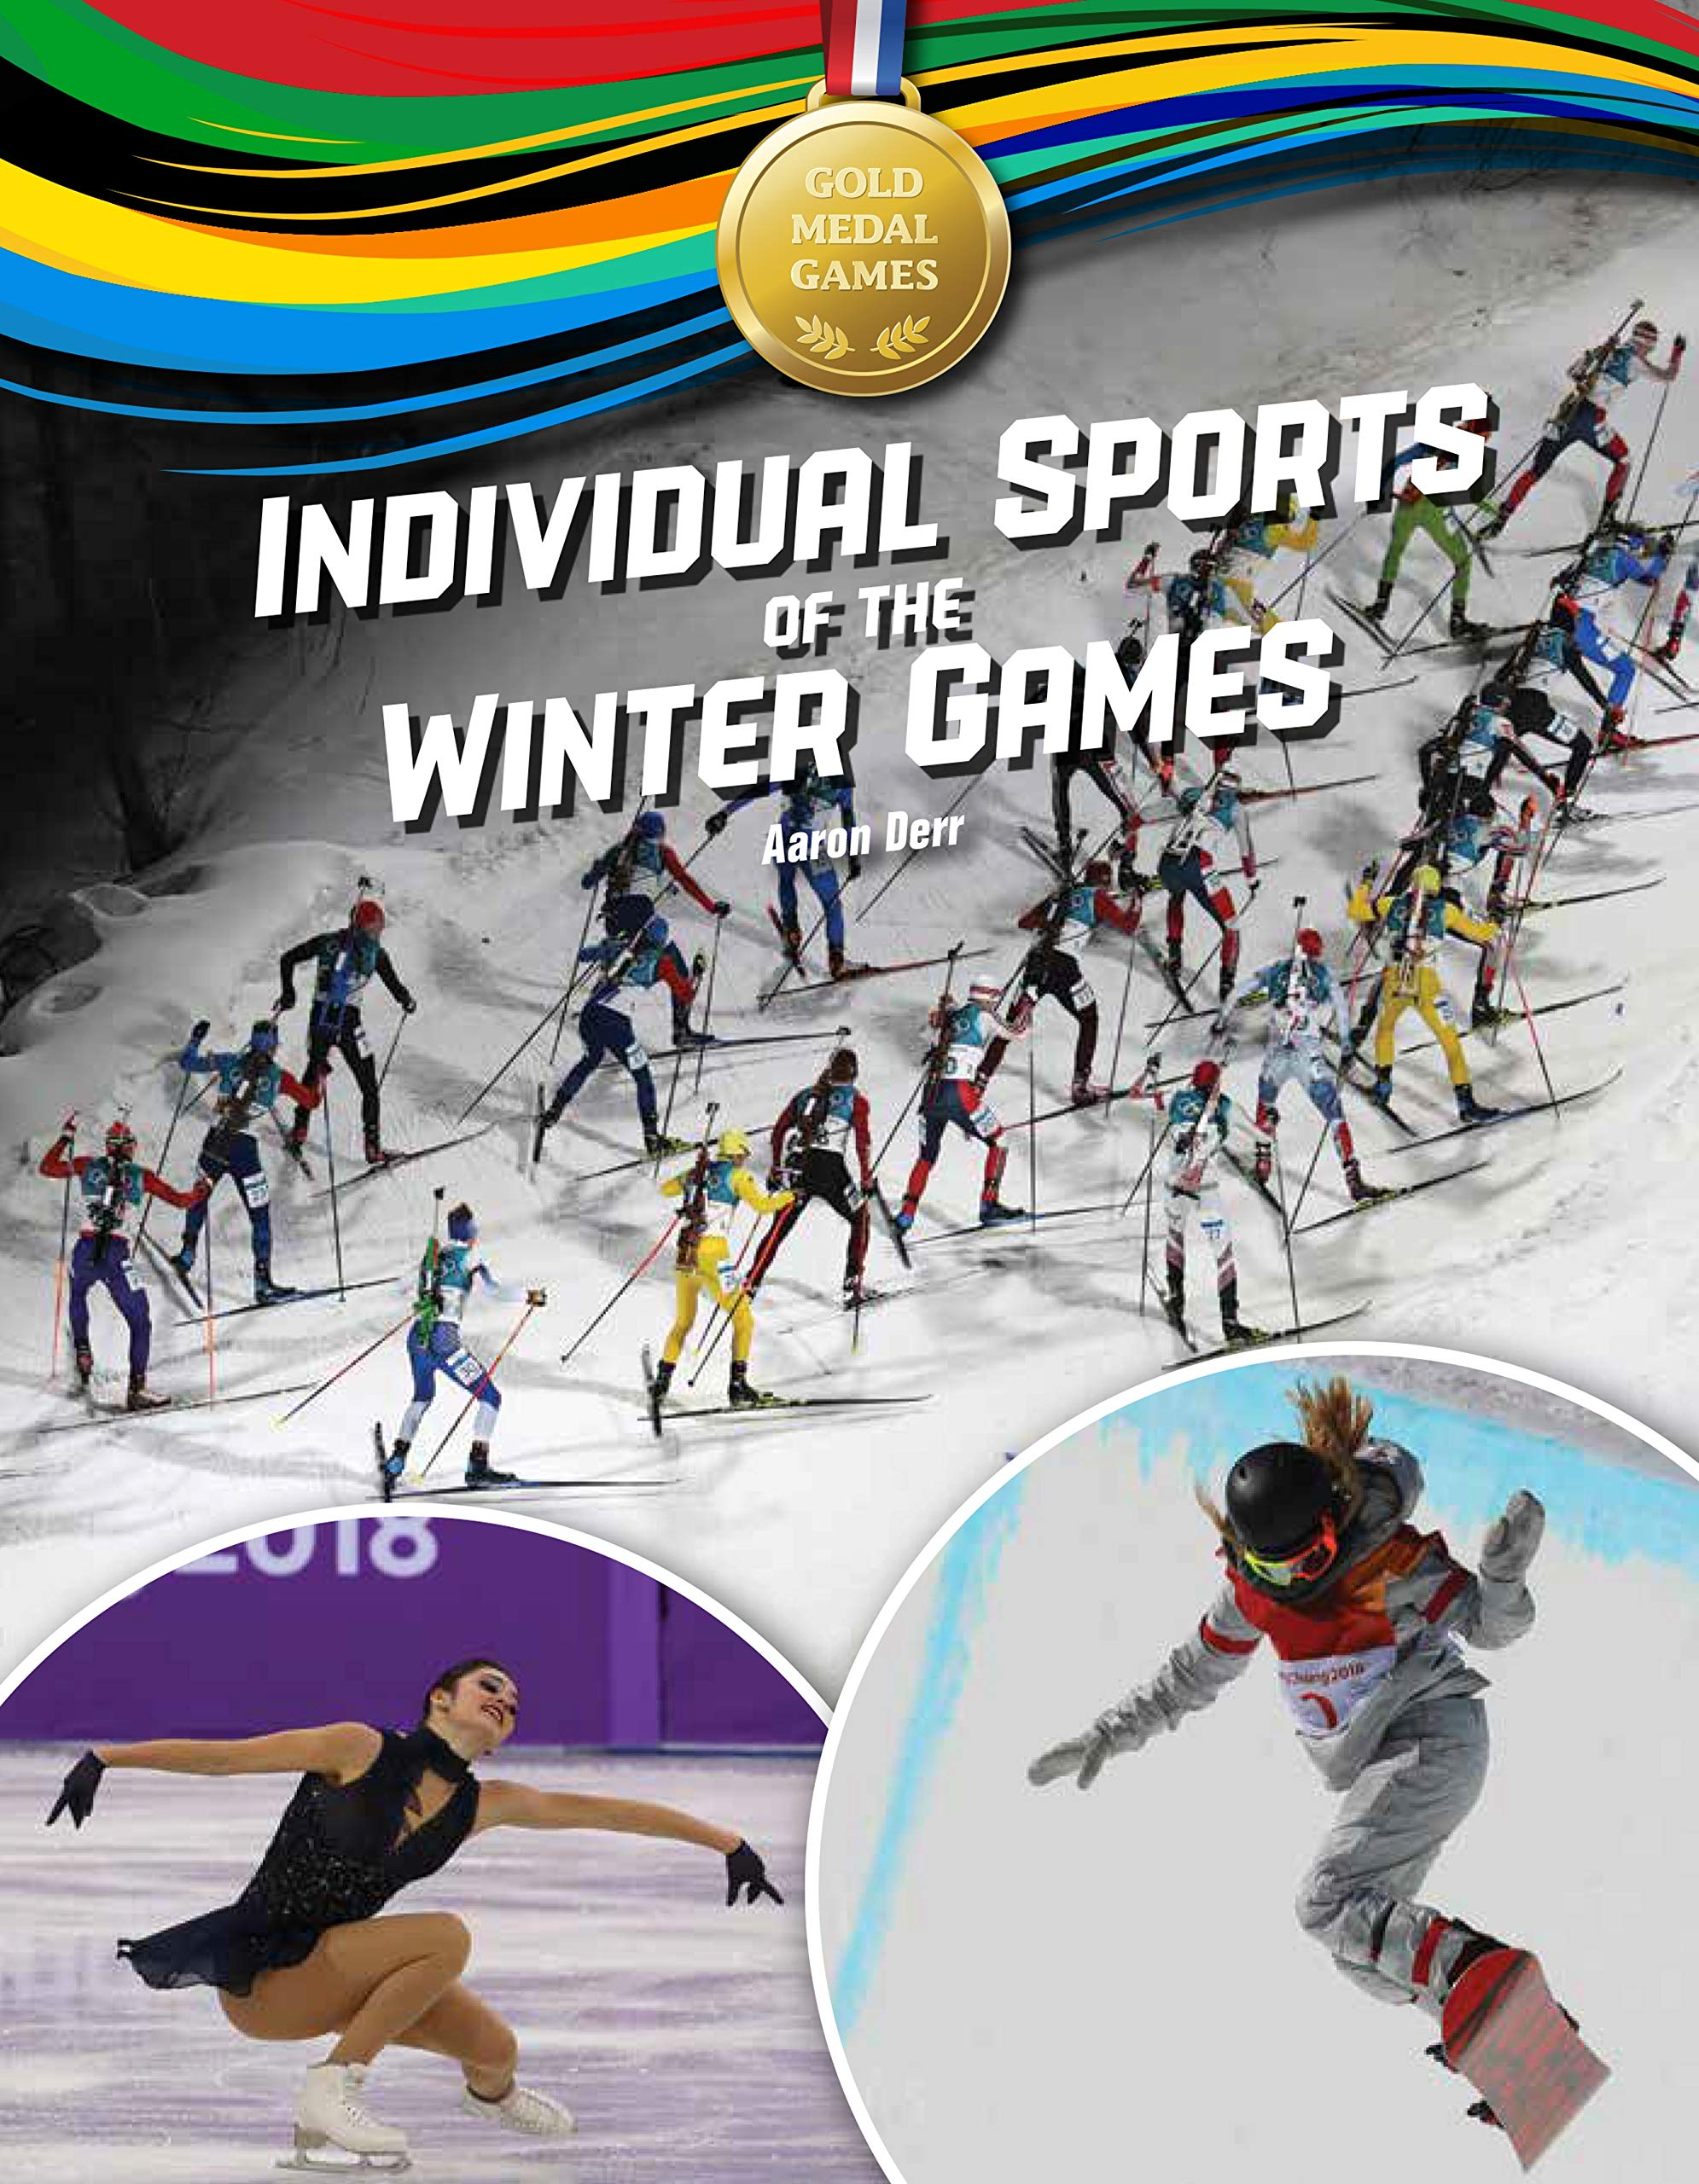 January Games With Gold 2020.Buy Individual Sports Of The Winter Games Gold Medal Games